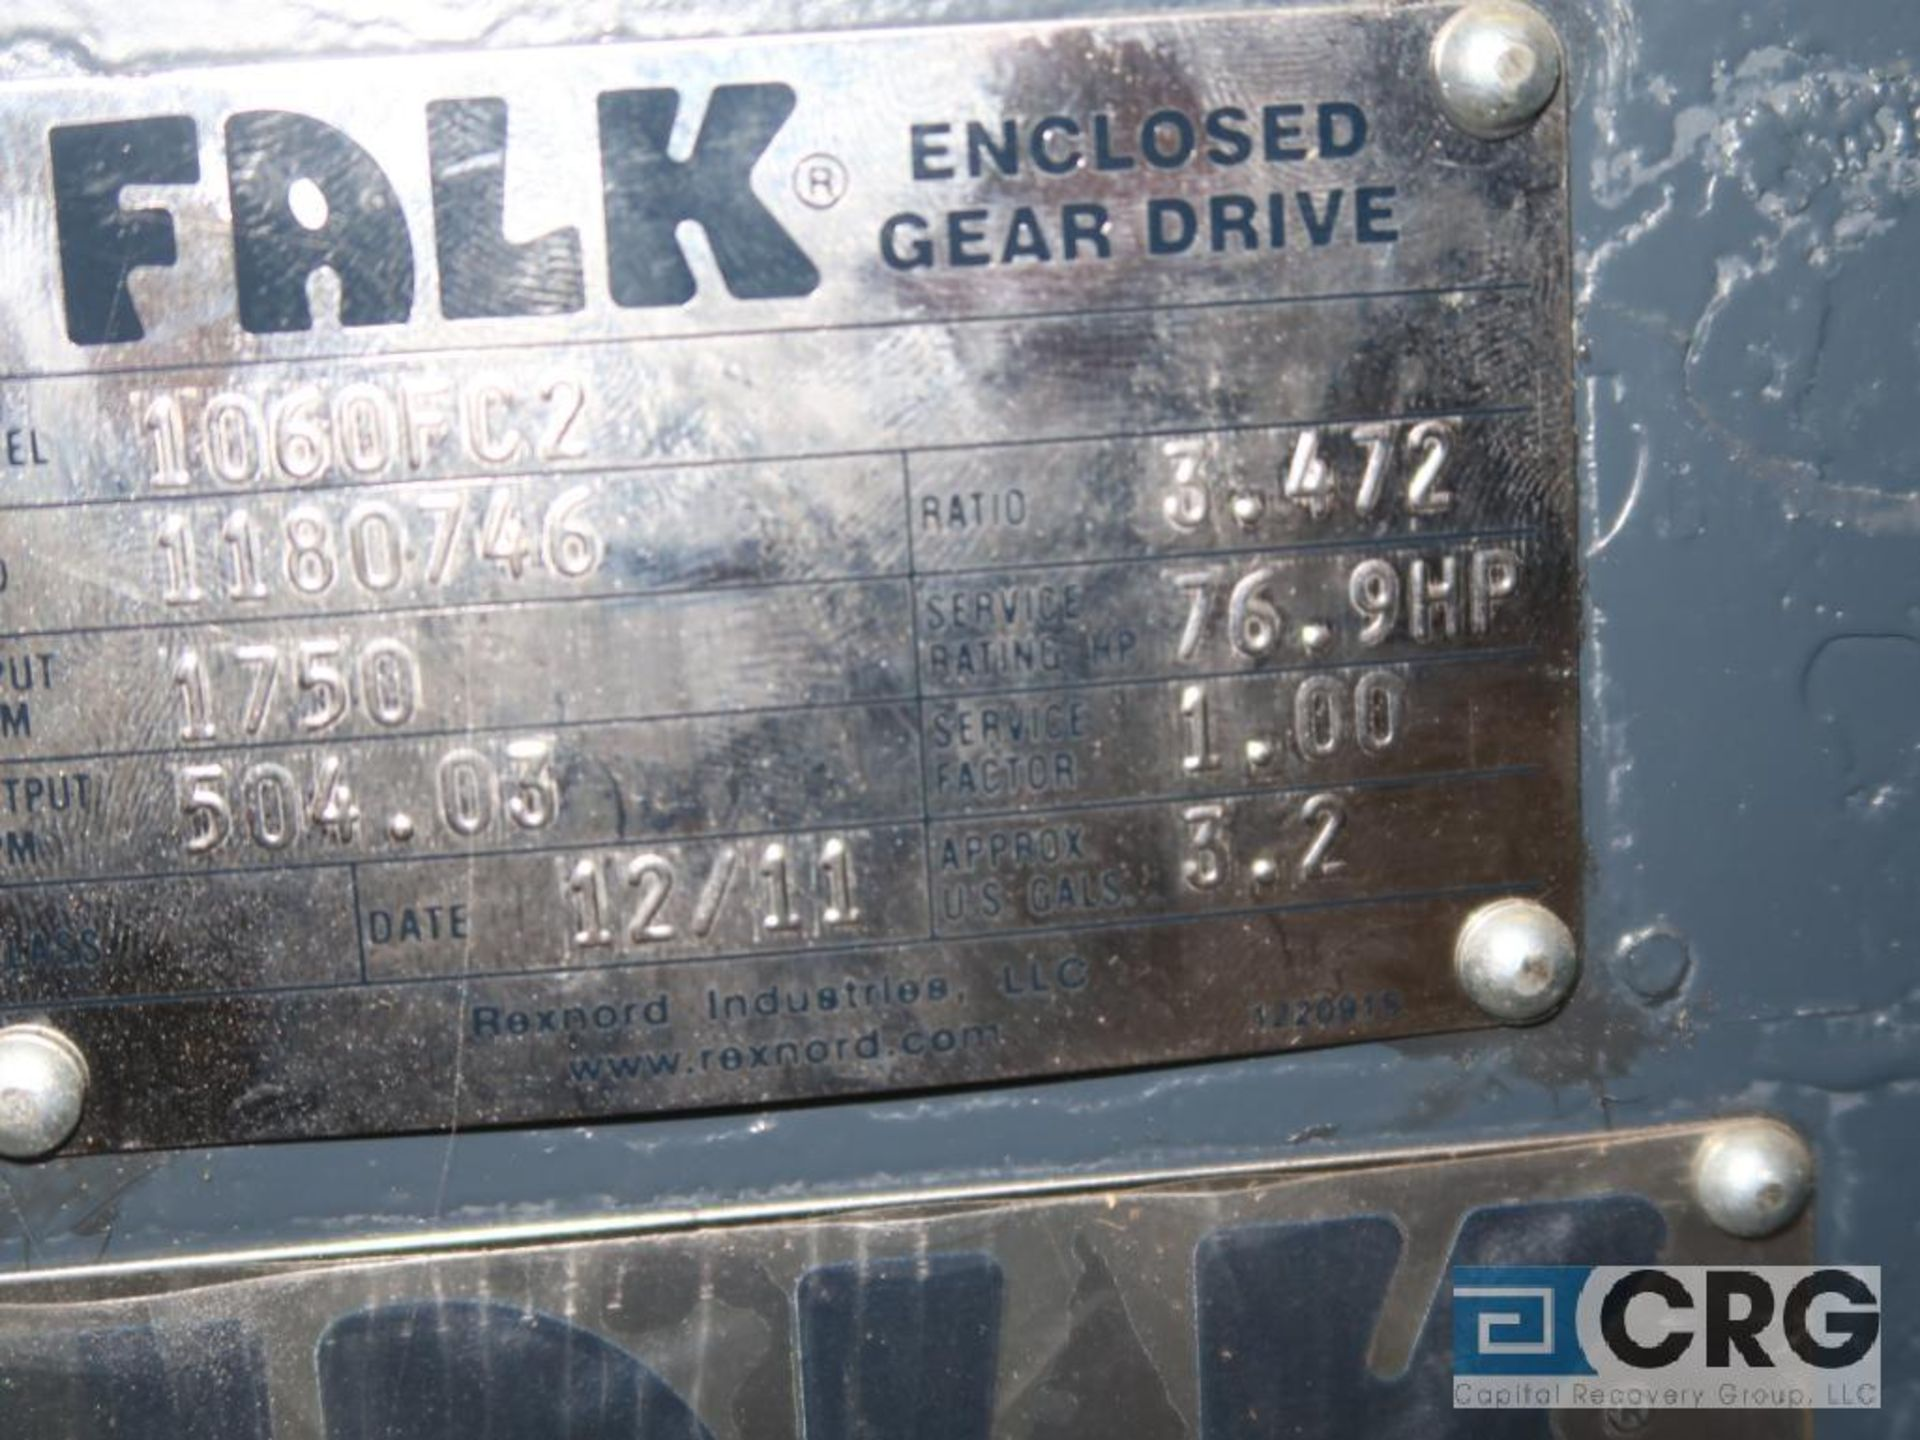 Falk 1062 FC2 gear drive, ratio-3.475, input RPM 1,750, output RPM 504.3, service rate HP. 76.9, s/n - Image 2 of 2